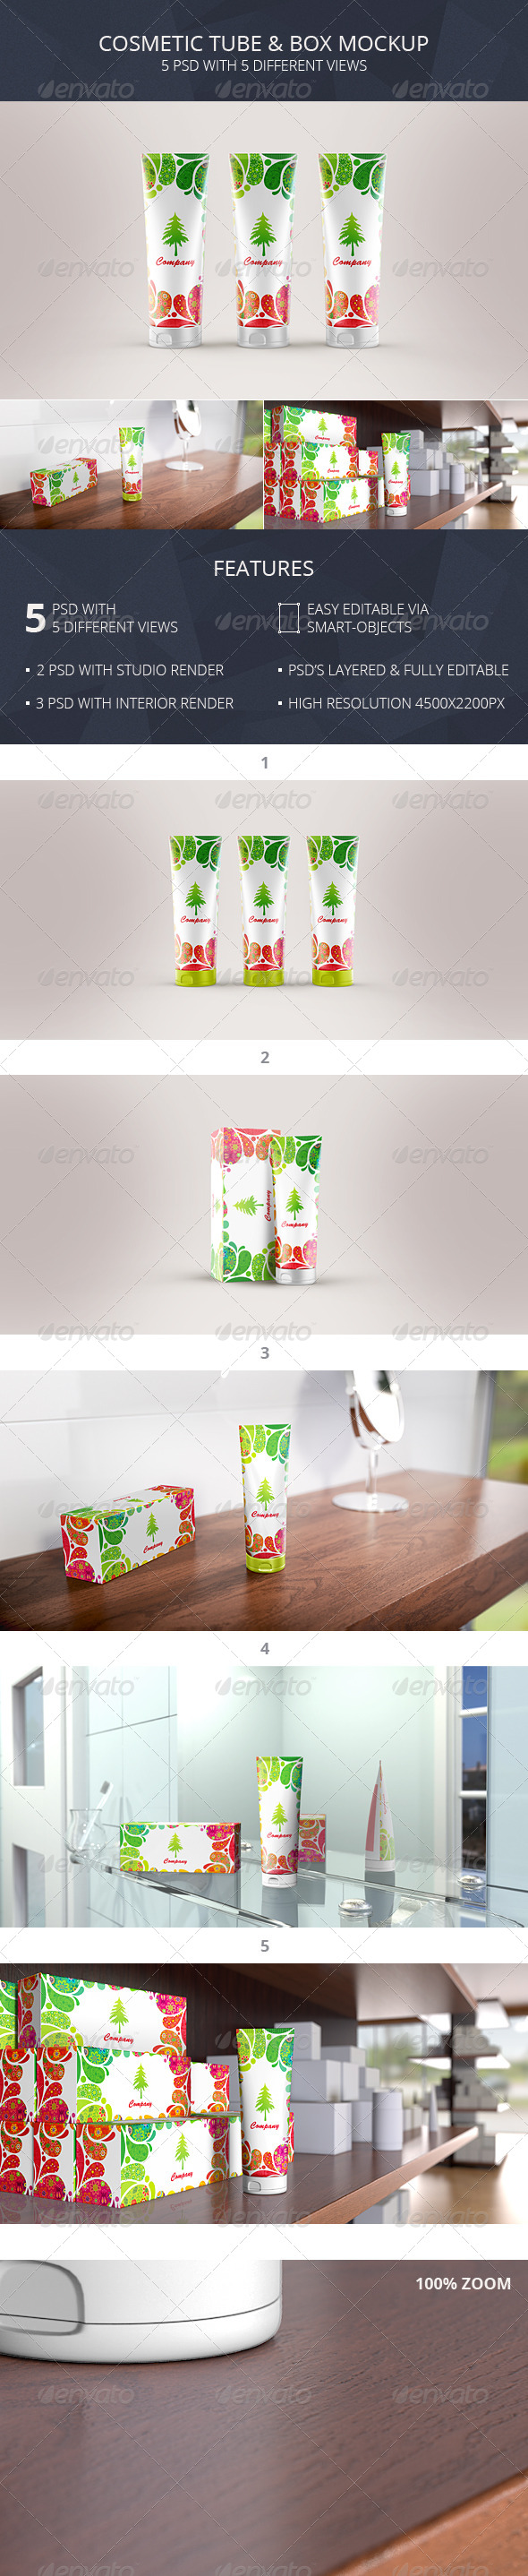 Cosmetic Tube & Box Mockup (Toothpaste Packaging) - Beauty Packaging